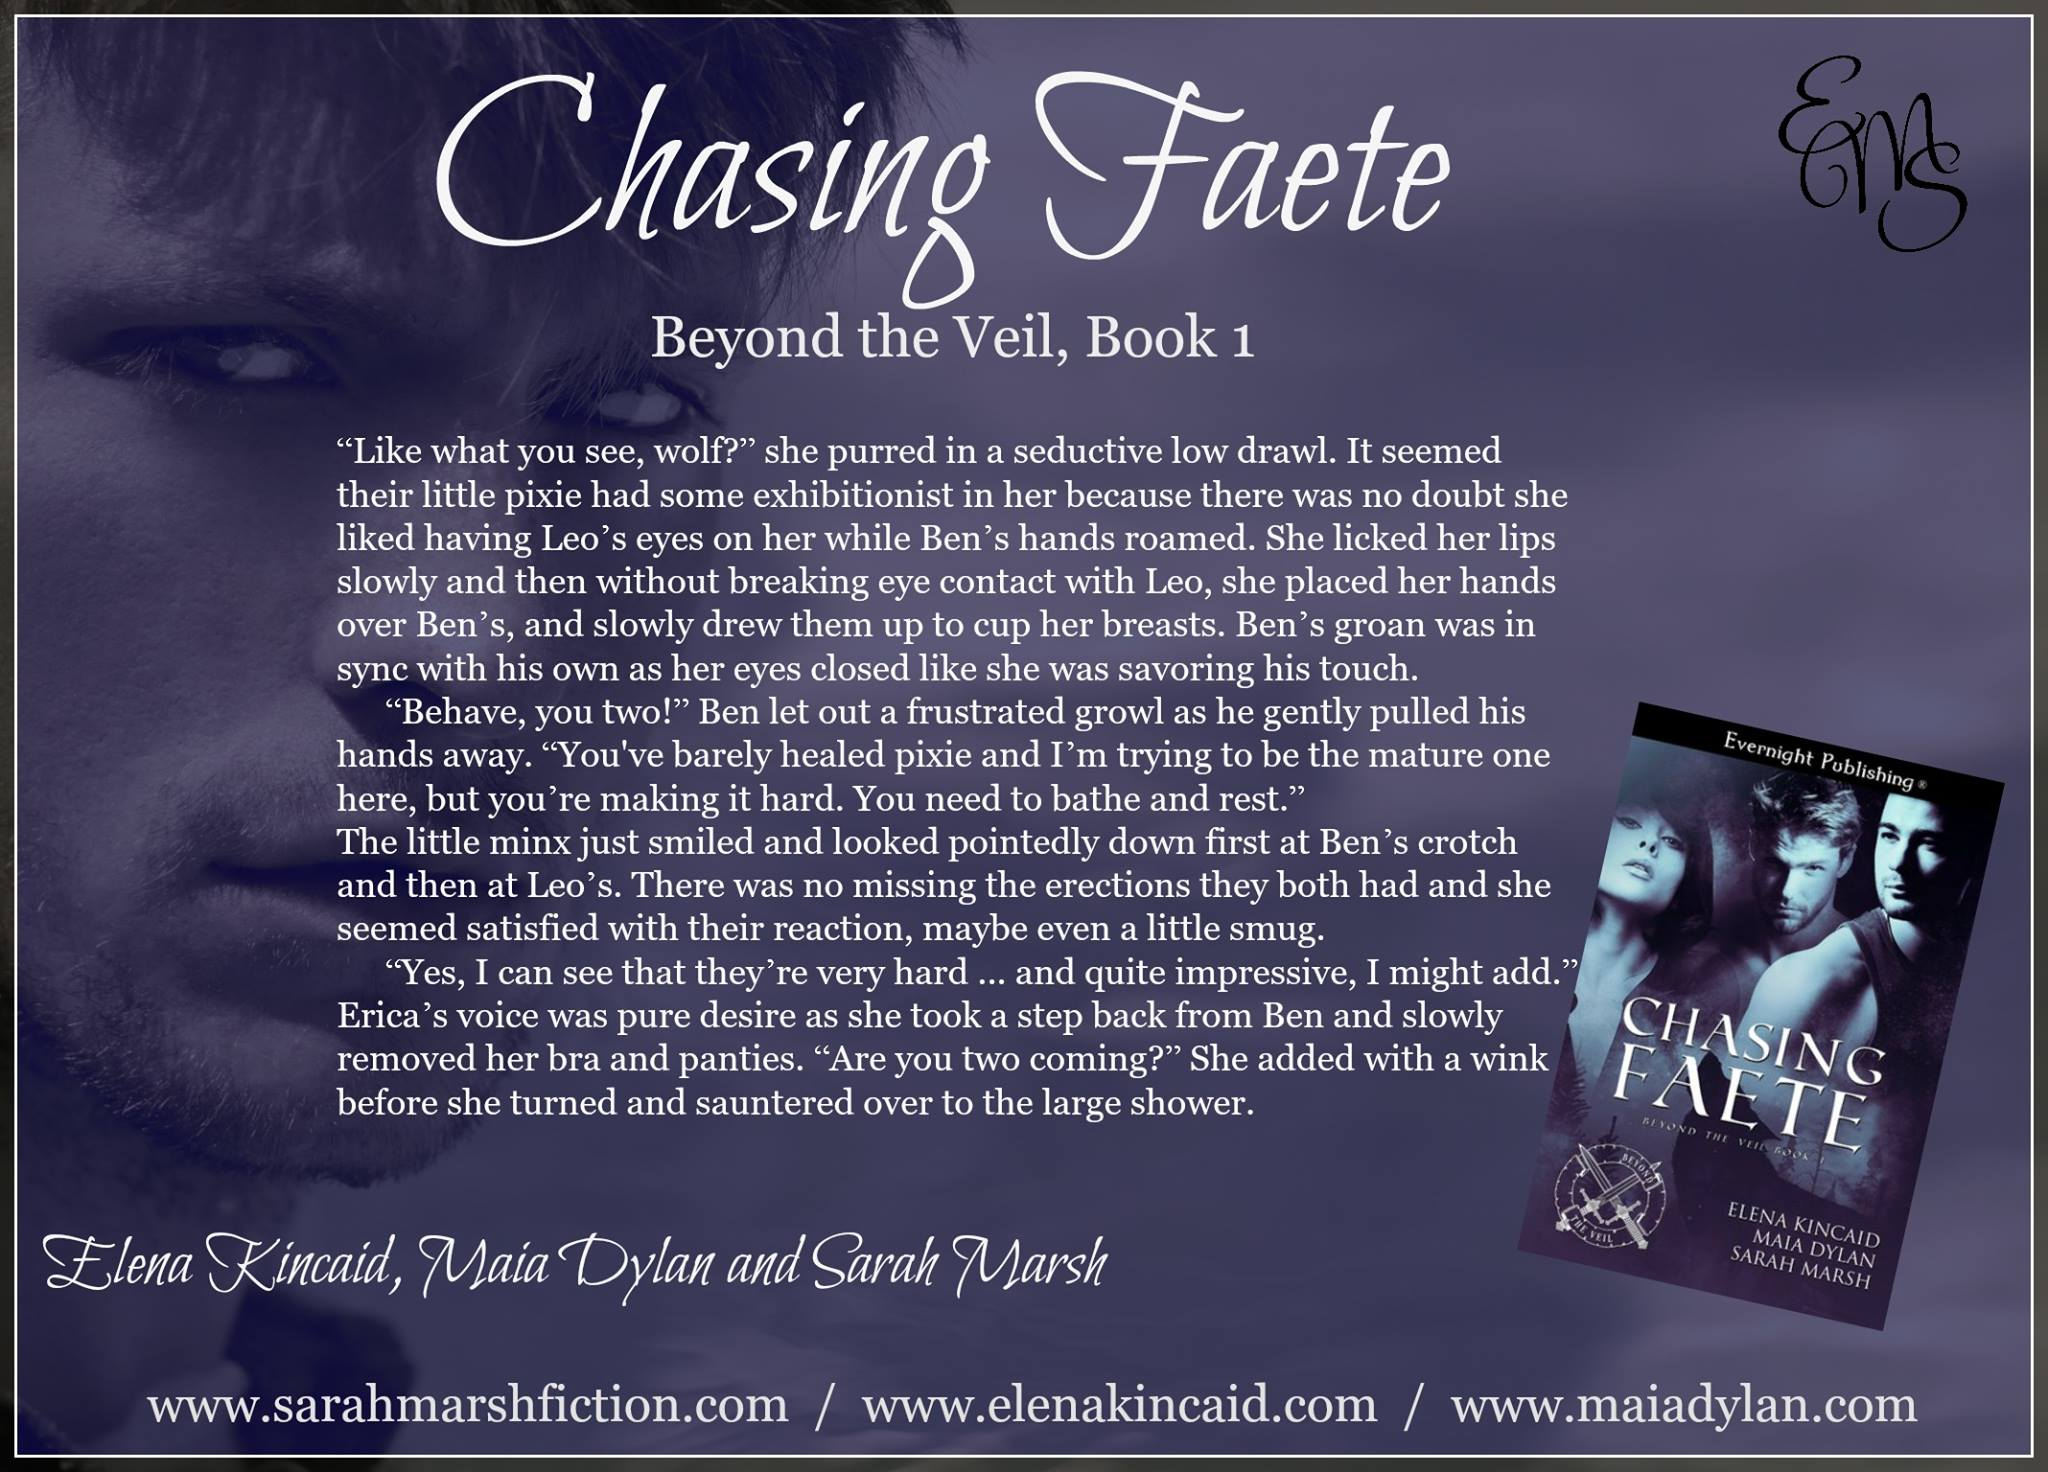 Chasing Faete (Beyond the Veil #1) by Elena Kincaid, Maia Dylan, and Sarah Marsh